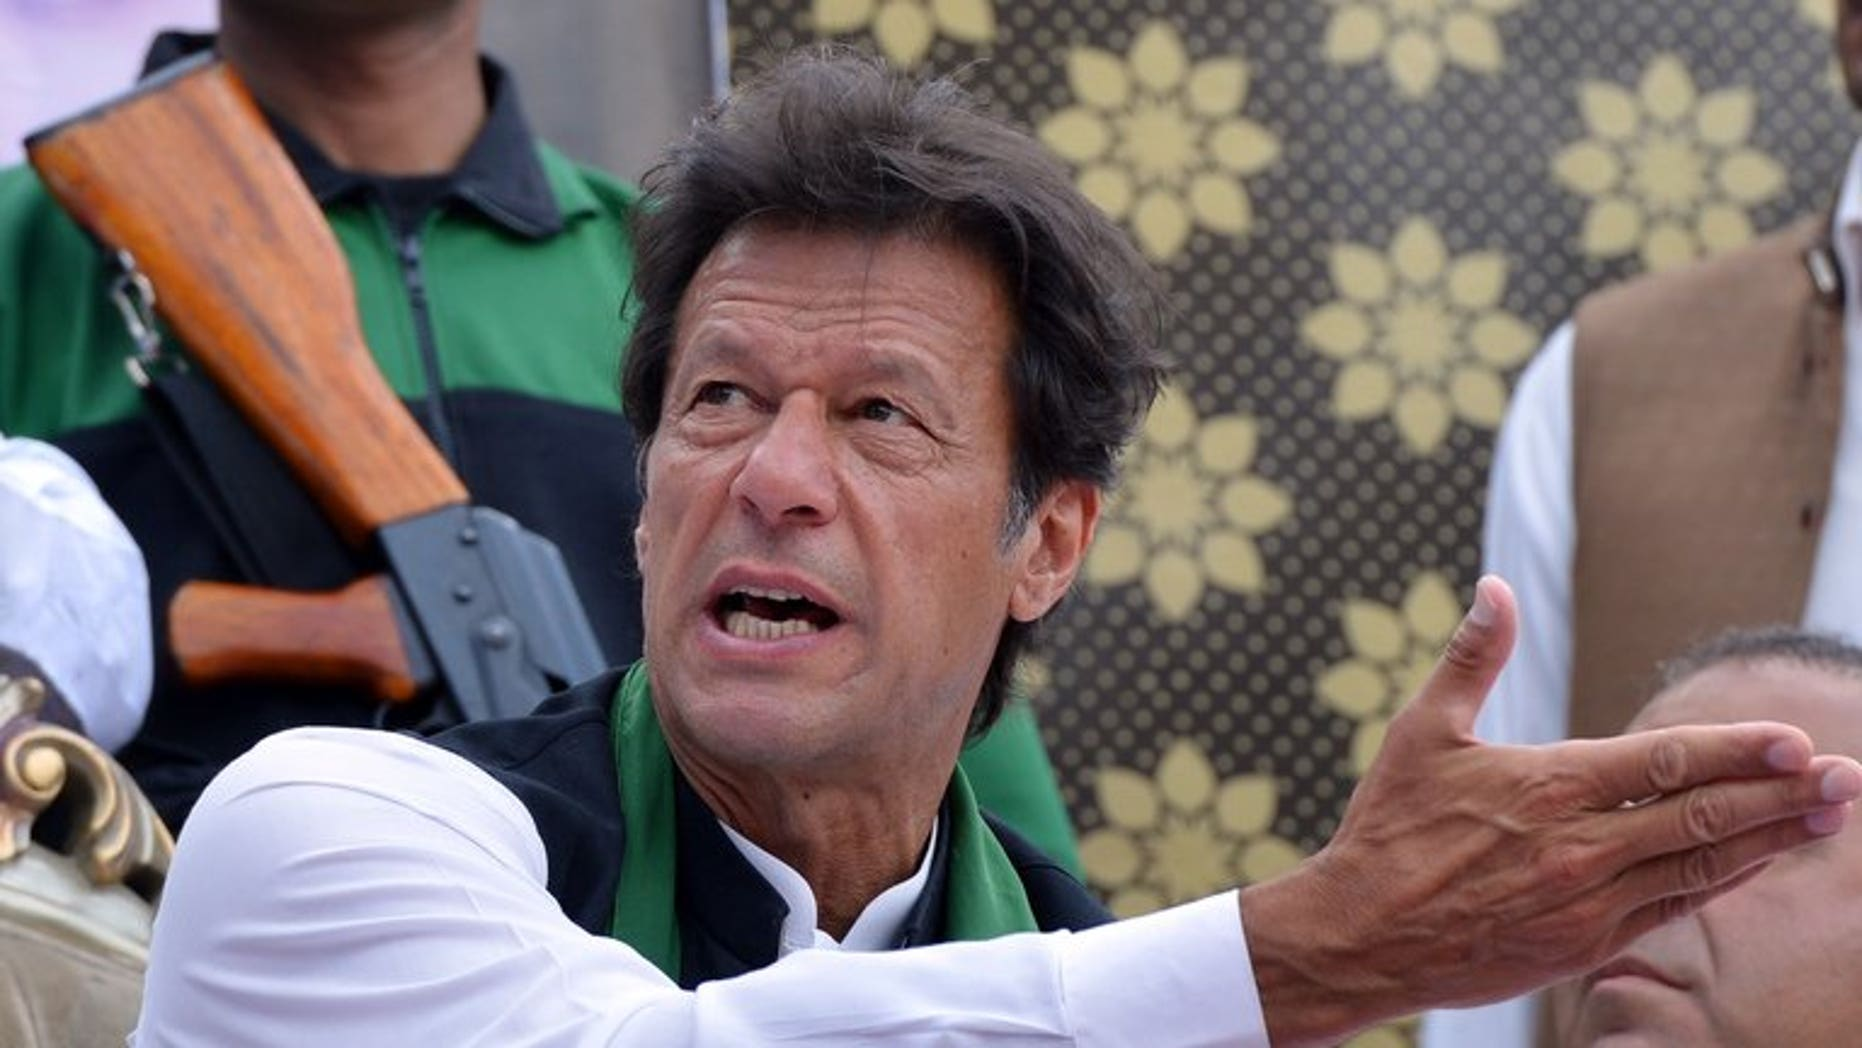 Cricket legend and chairman of Pakistan Tehreek-e-Insaaf (PTI) Imran Khan gestures as he attends a general election campaign meeting in Murree on April 29, 2013. Khan urged the government and military leaders to build a strategy to halt US drone attacks in the country's northwest as he was sworn into parliament.